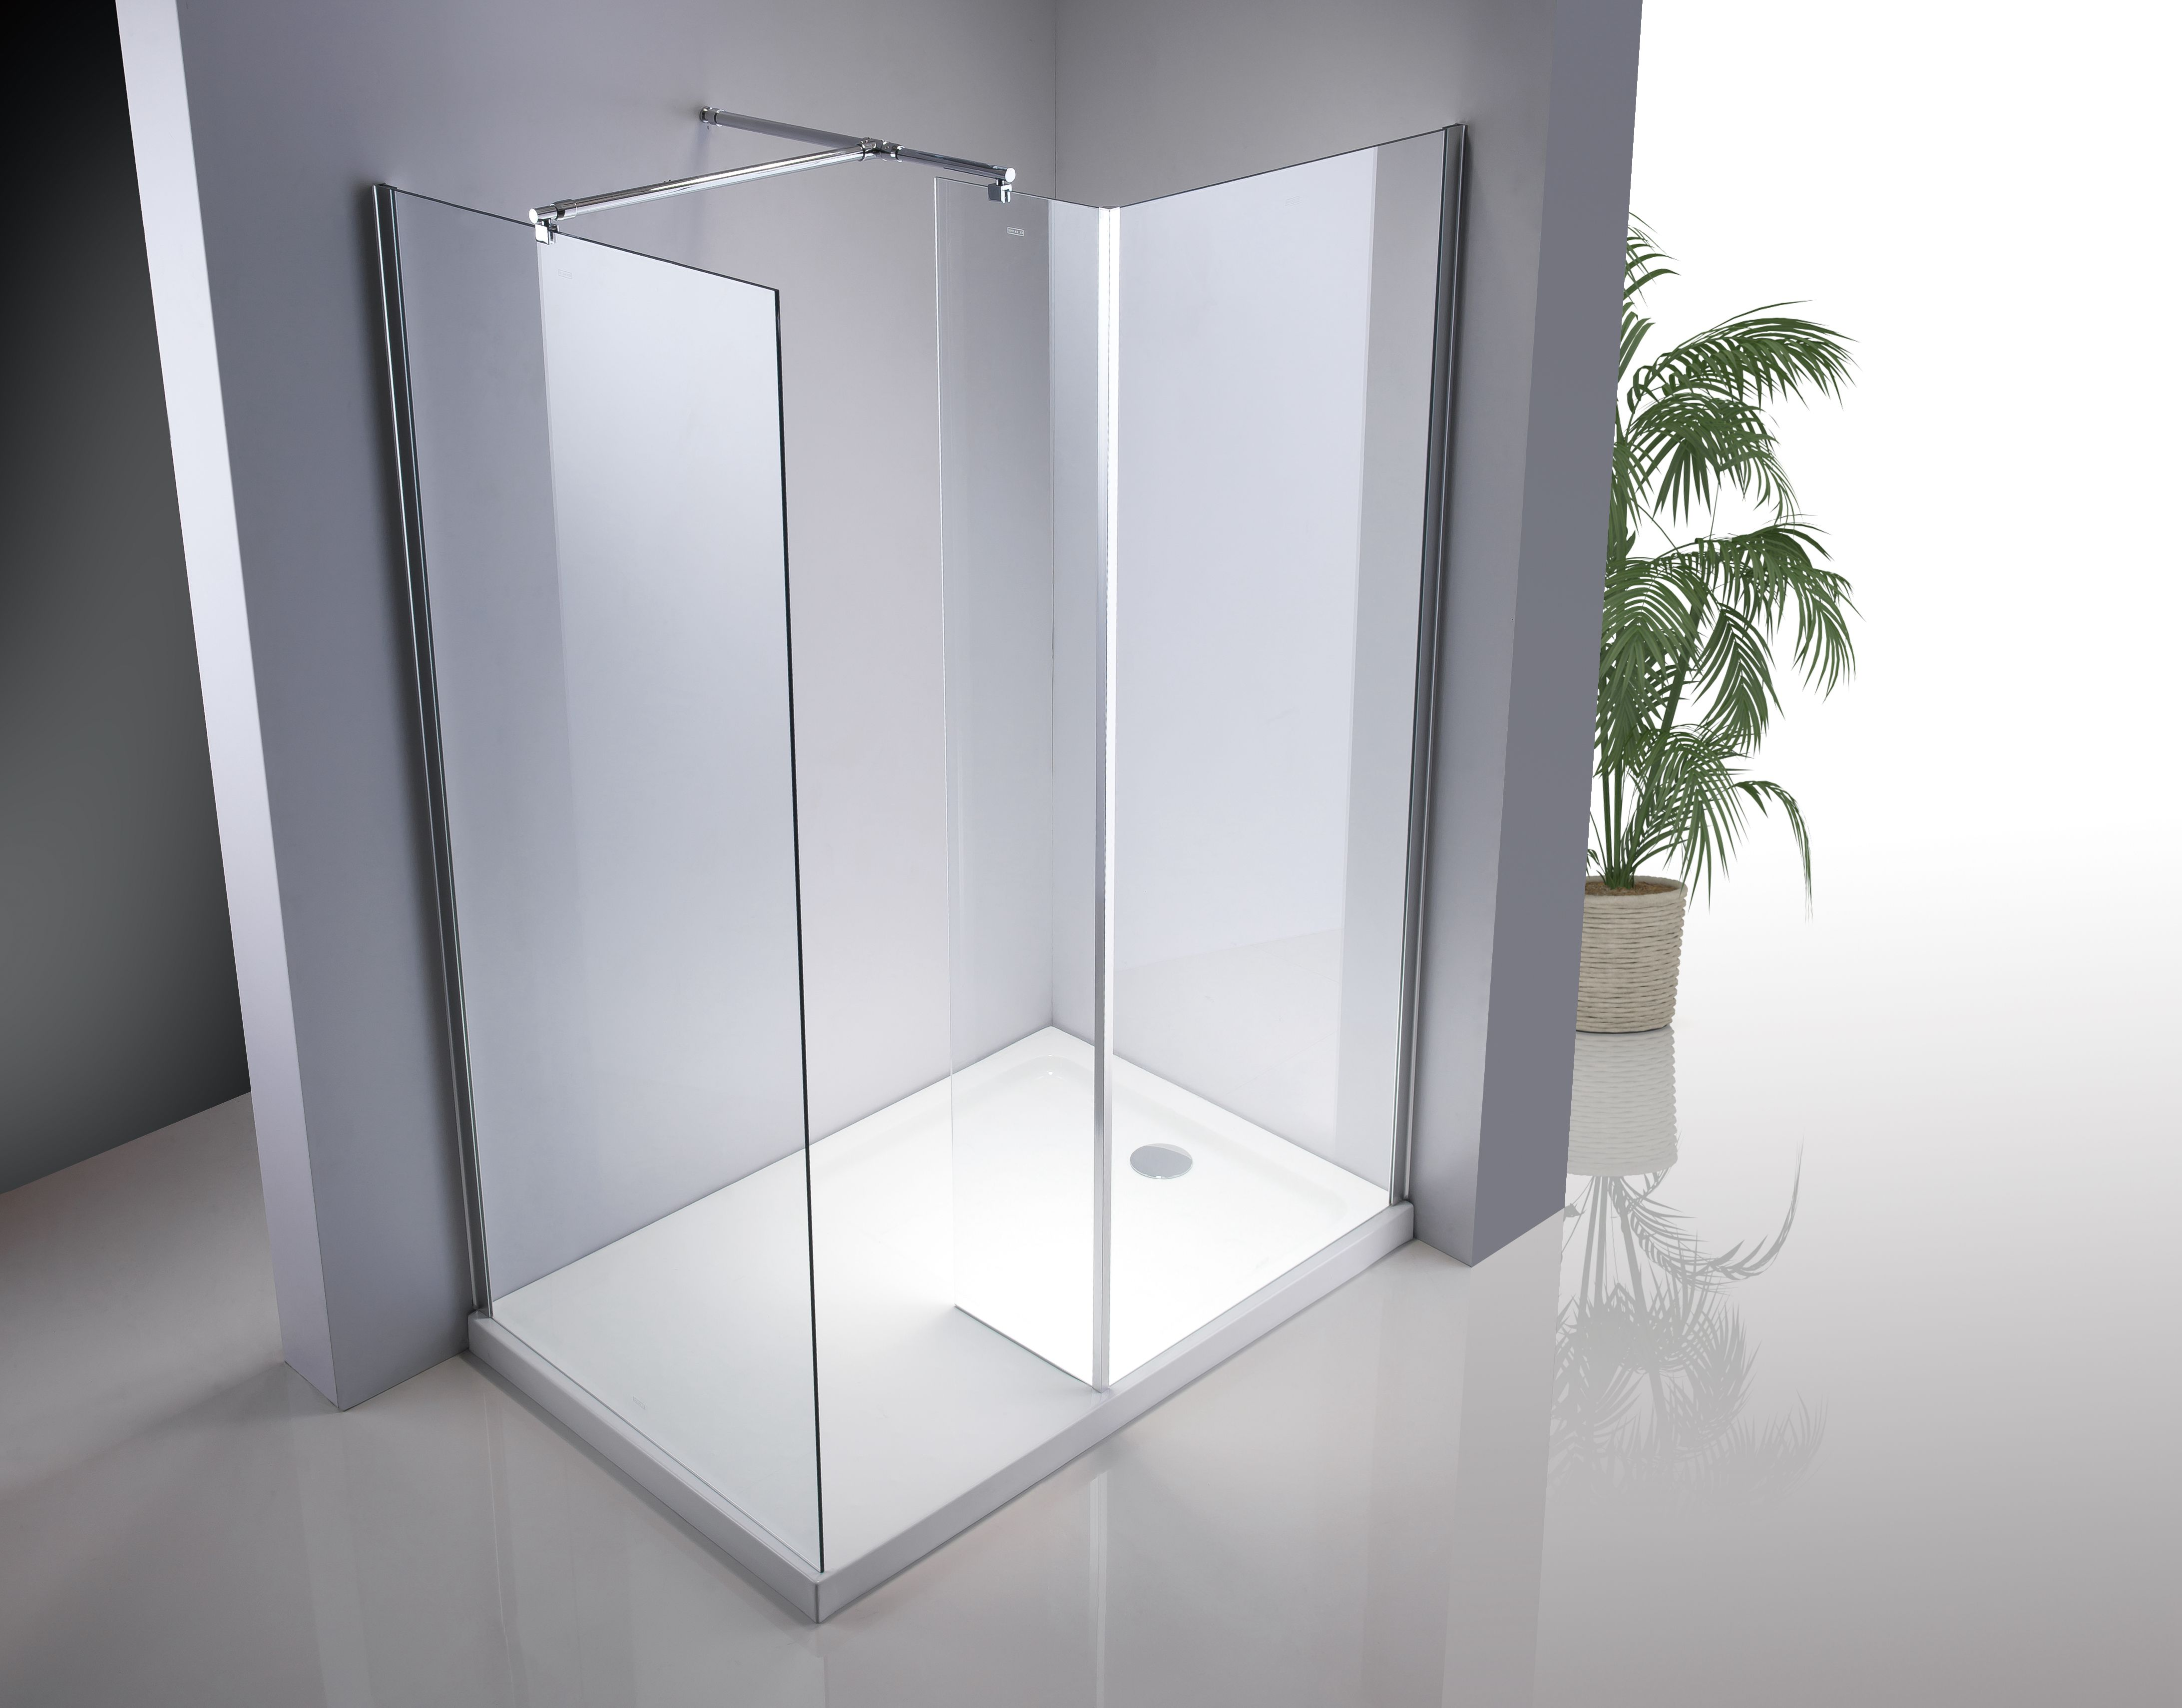 How to distinguish between stainless steel and aluminum alloy in shower room?